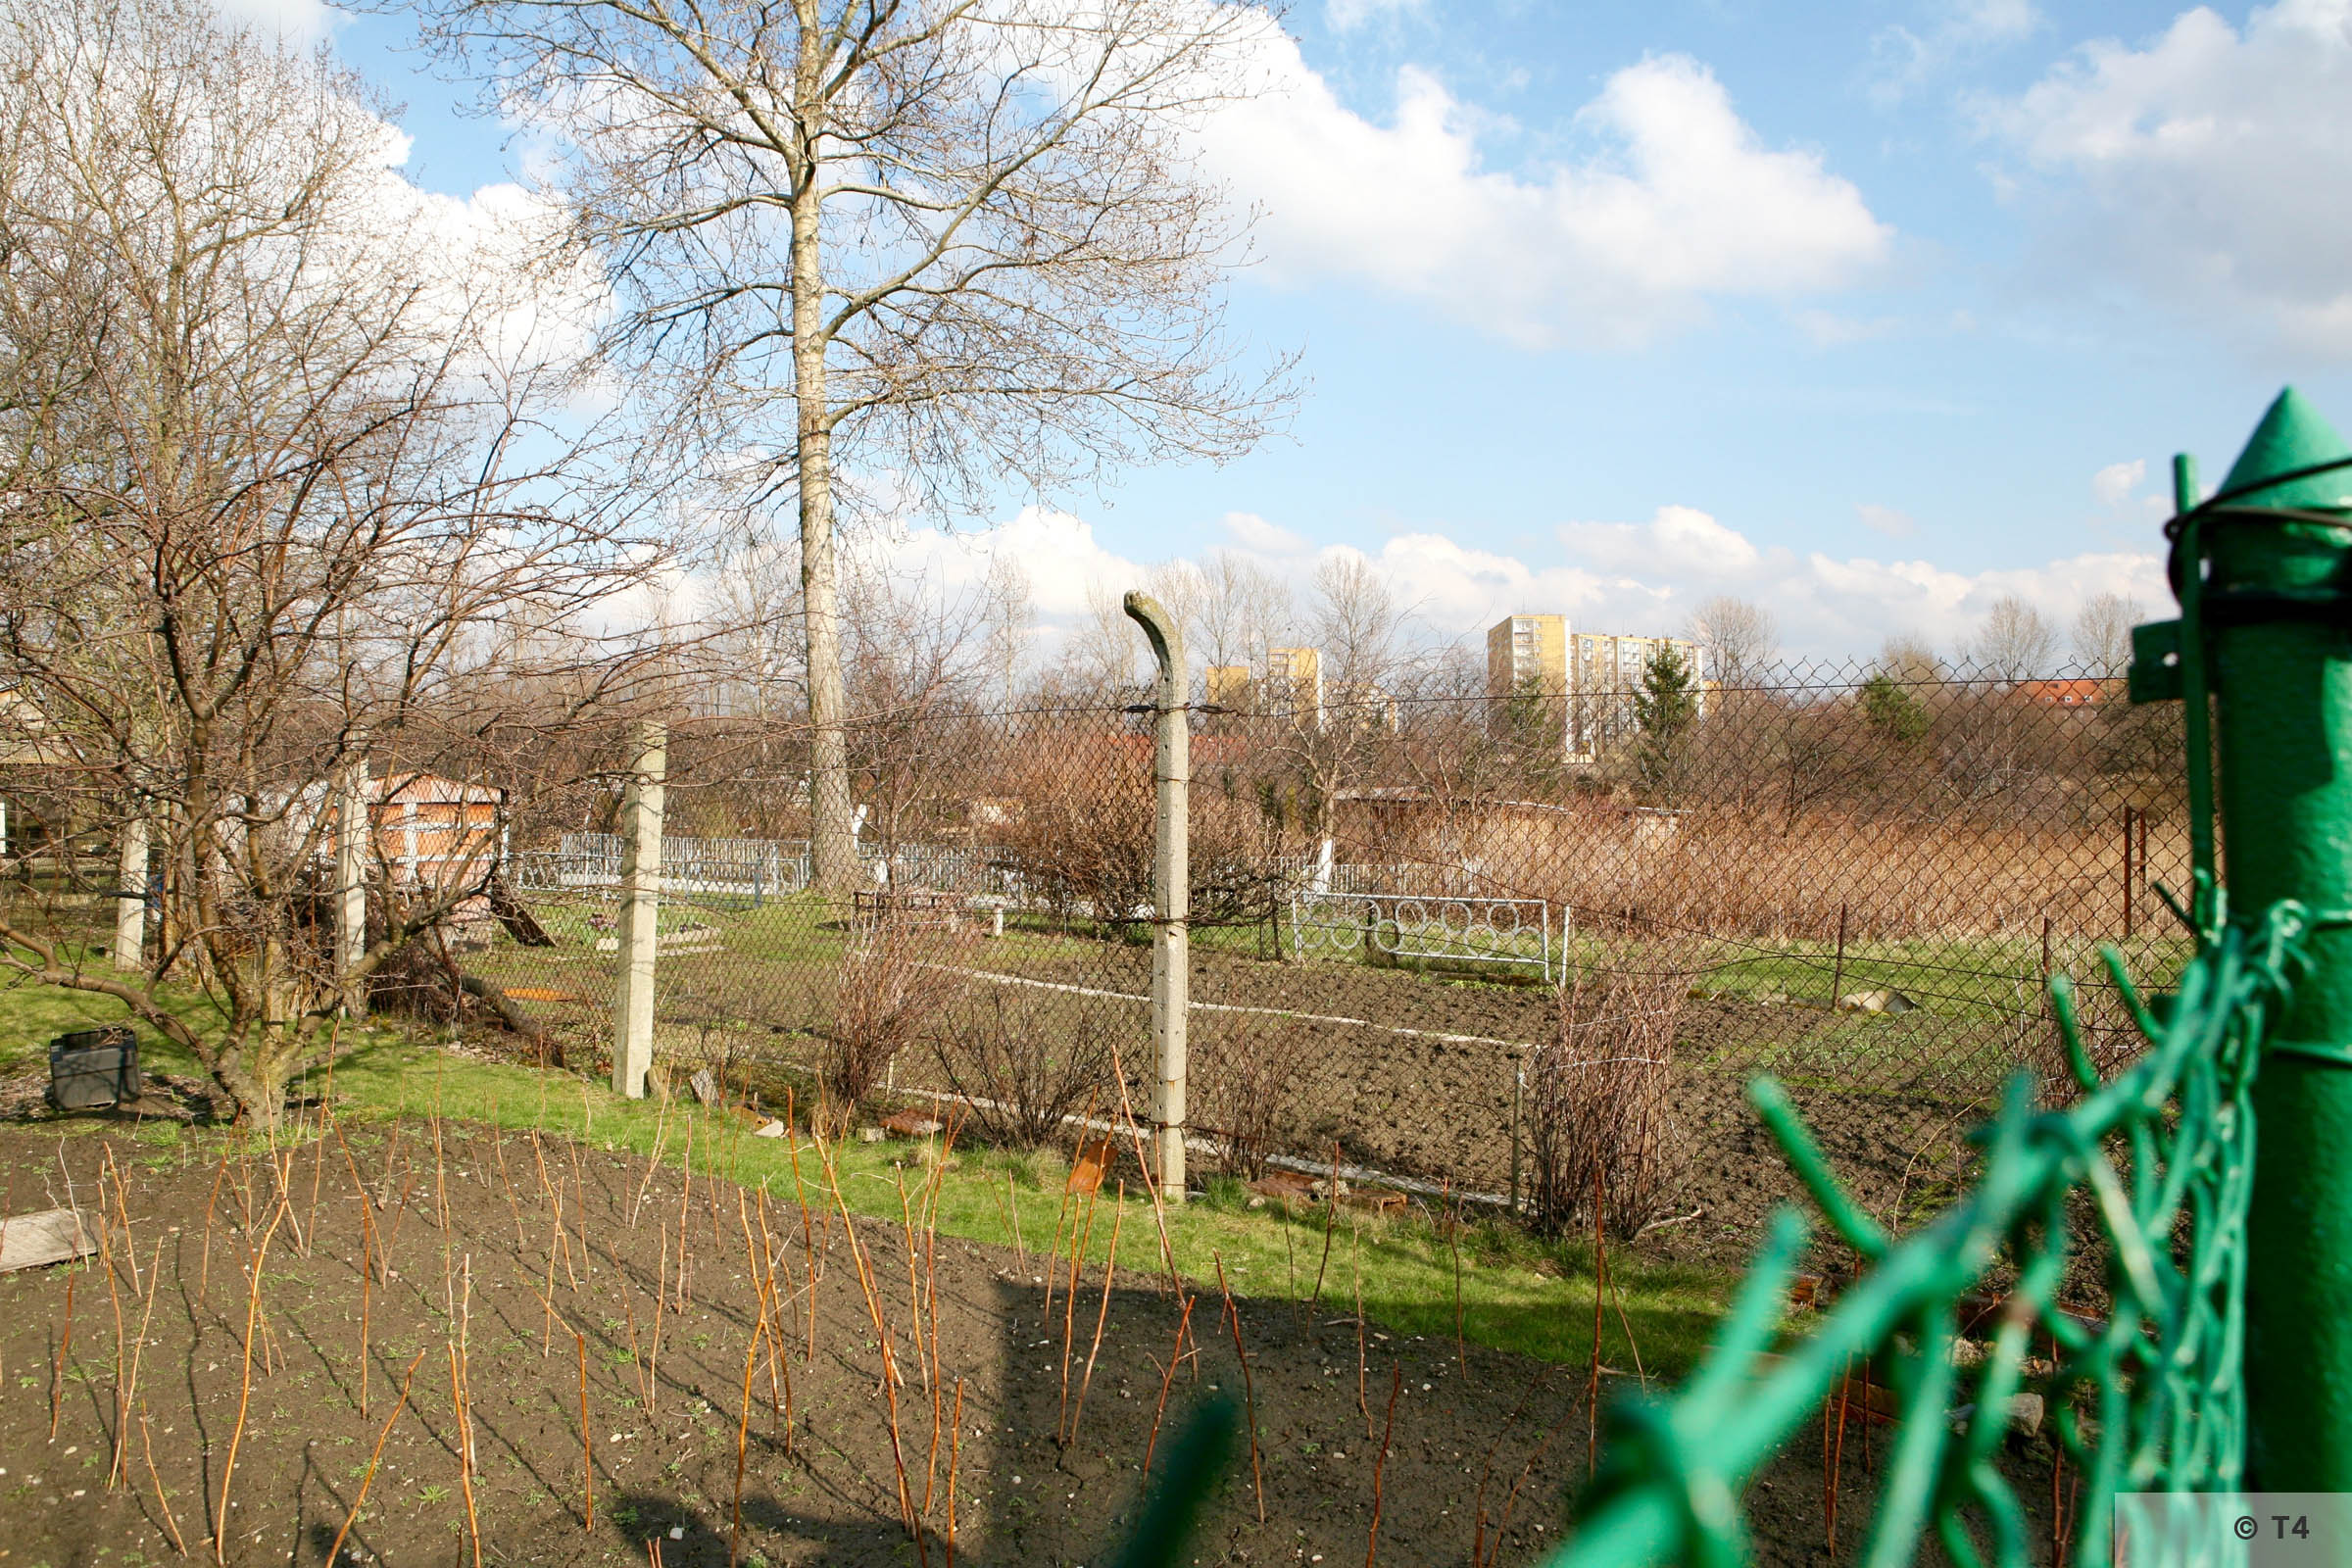 Area of former sub camp Glelwitz IV now allotments. 2007 T4 6010